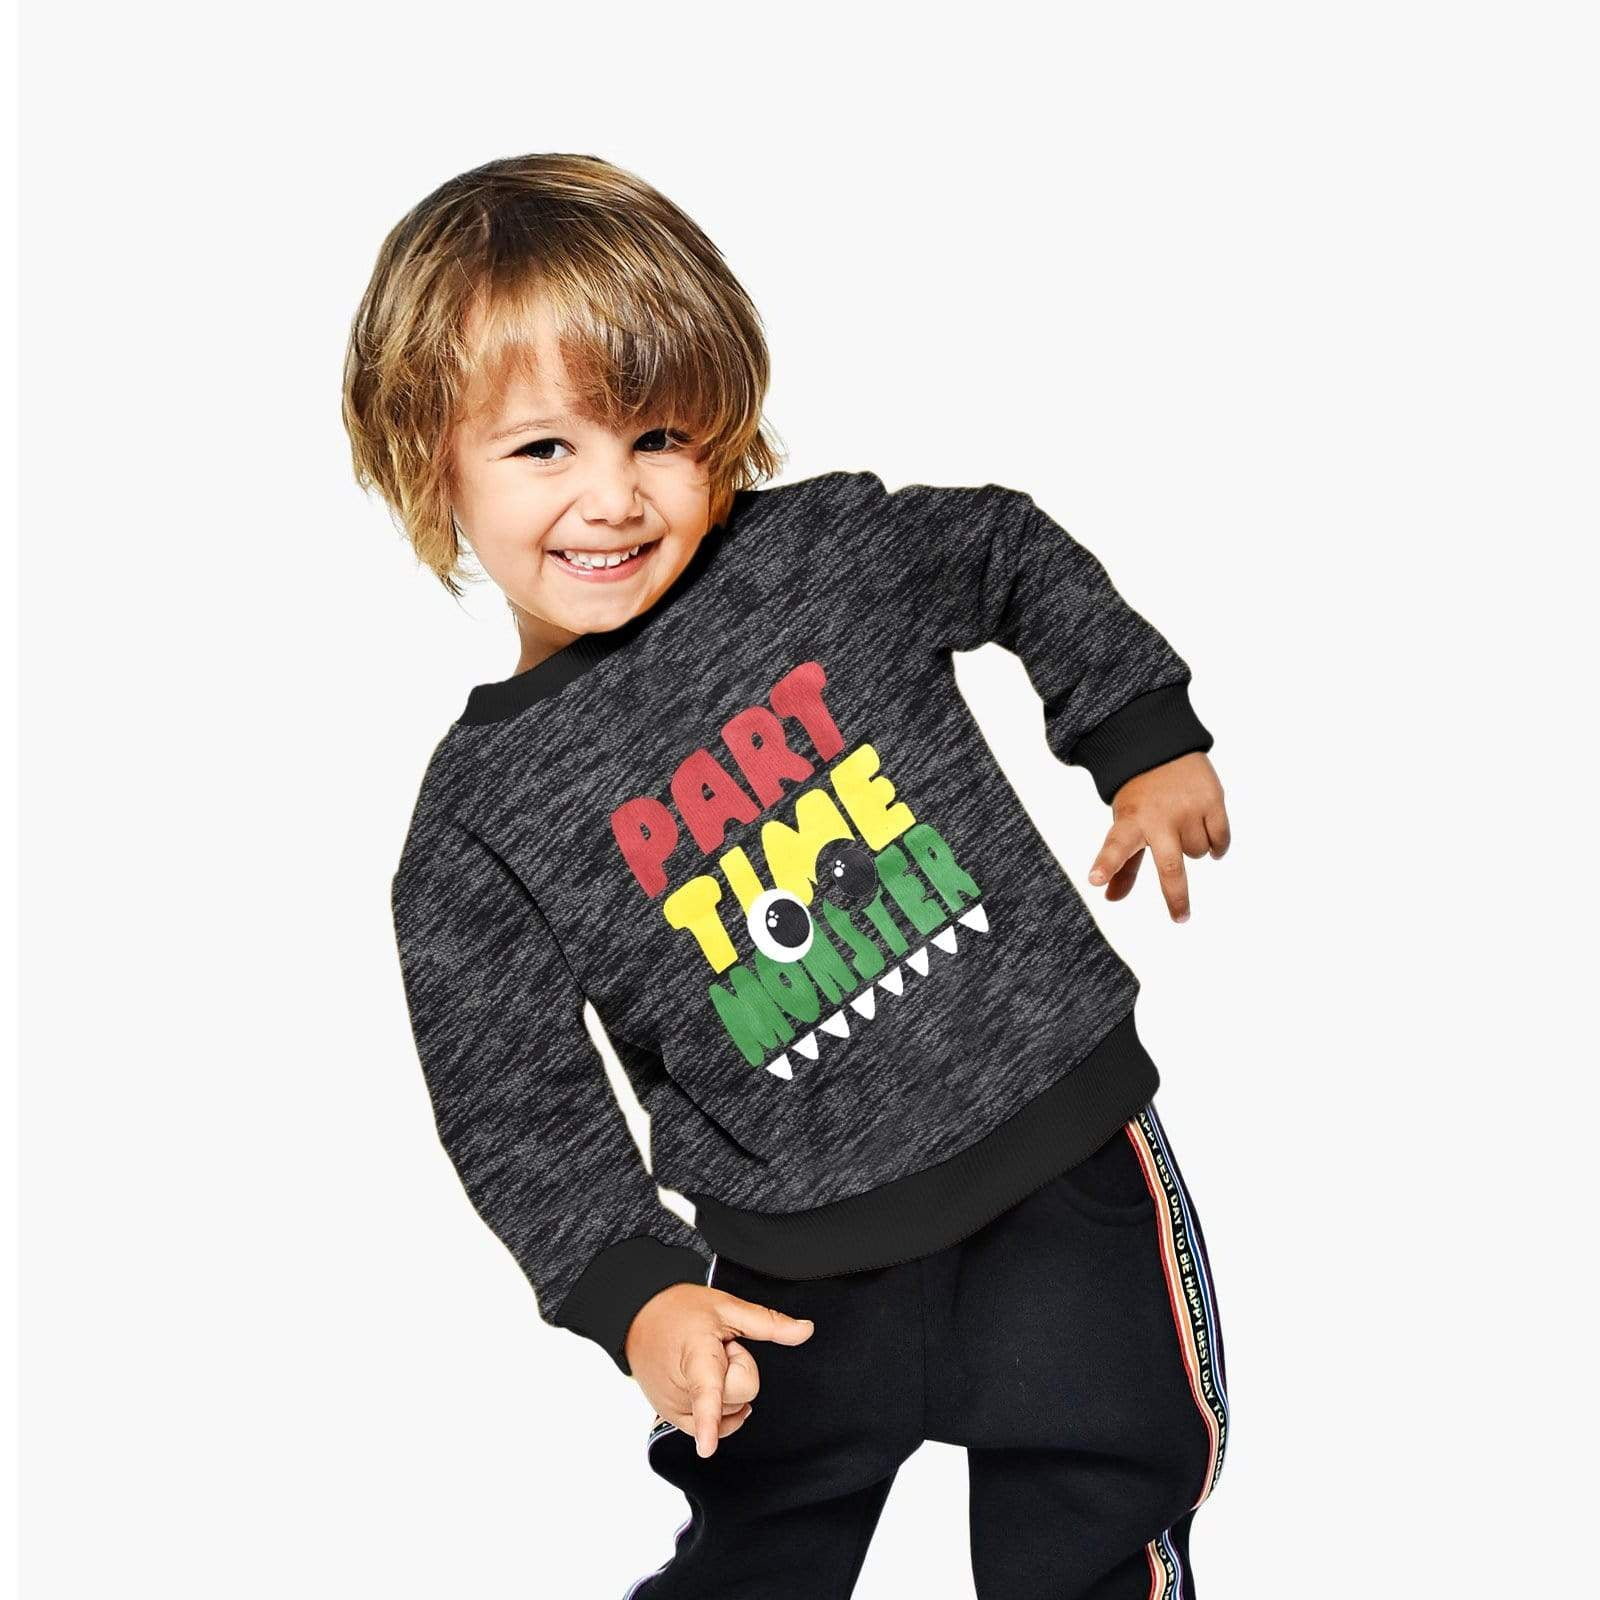 Stone Harbor Kid's Sweatshirt Black / 2-3 Years BOY'S STONE HARBOR PART MONSTER LONG SLEEVE SWEAT SHIRT